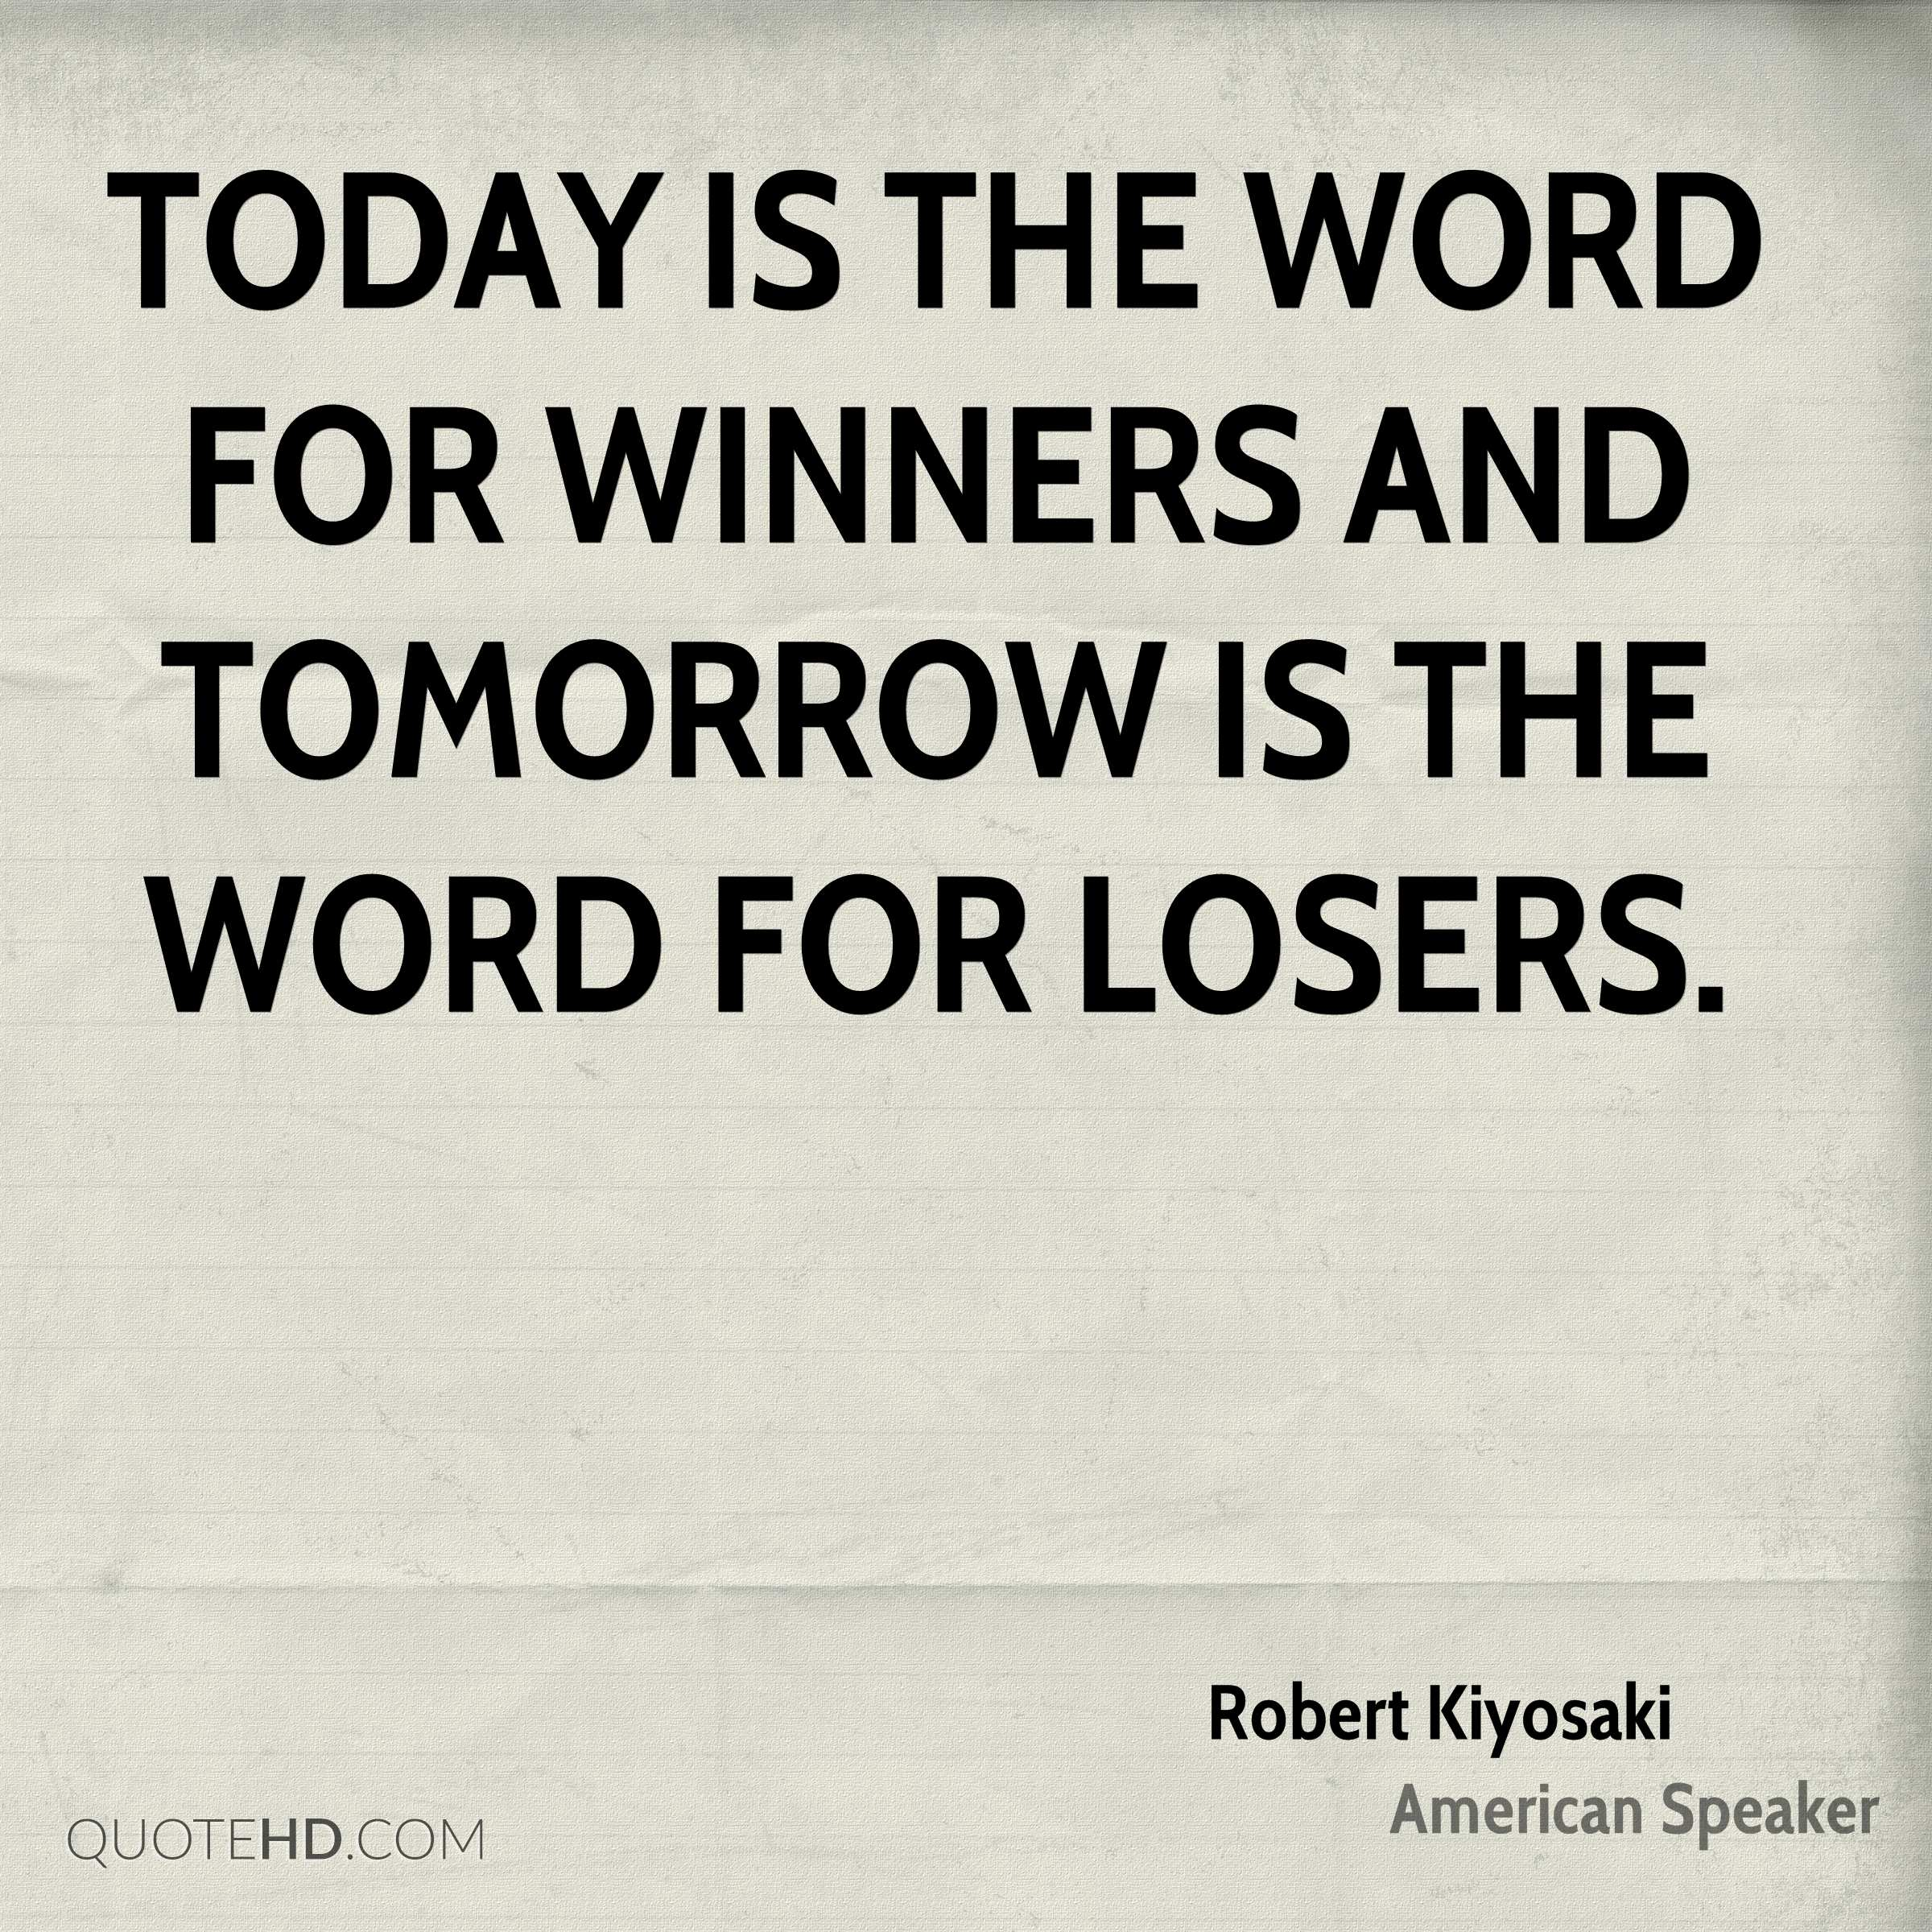 Today is the word for winners and tomorrow is the word for losers.